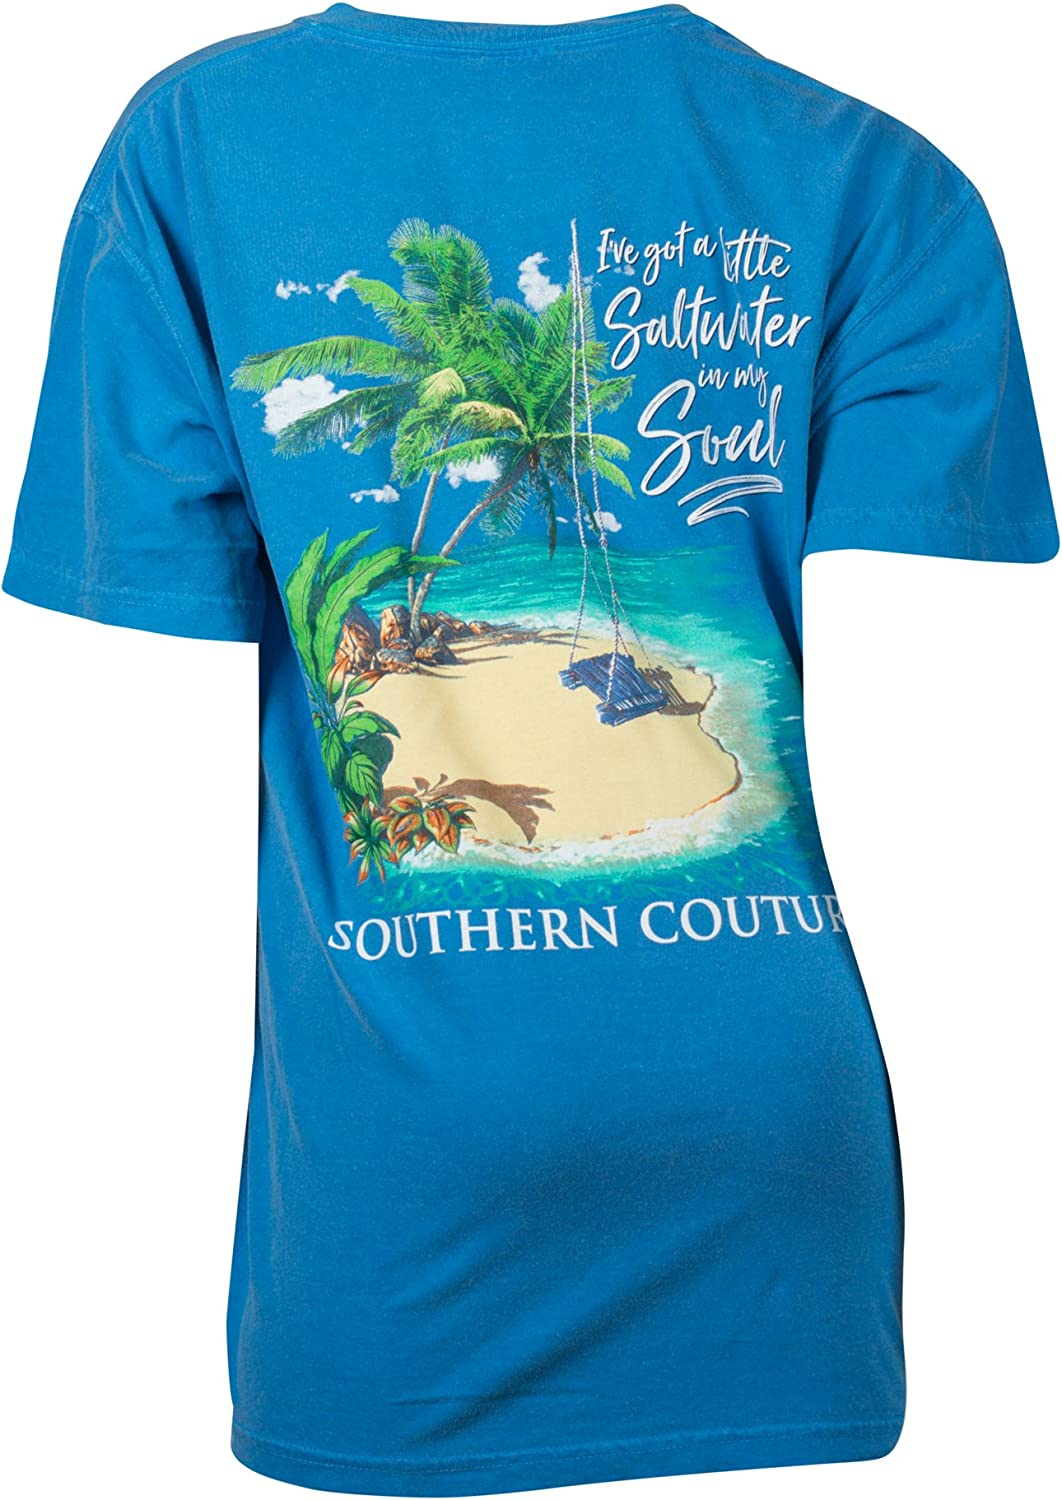 Southern Couture SC Comfort I've Got A Little Saltwater in My Soul Classic Fit Adult T-Shirt - Royal Caribe